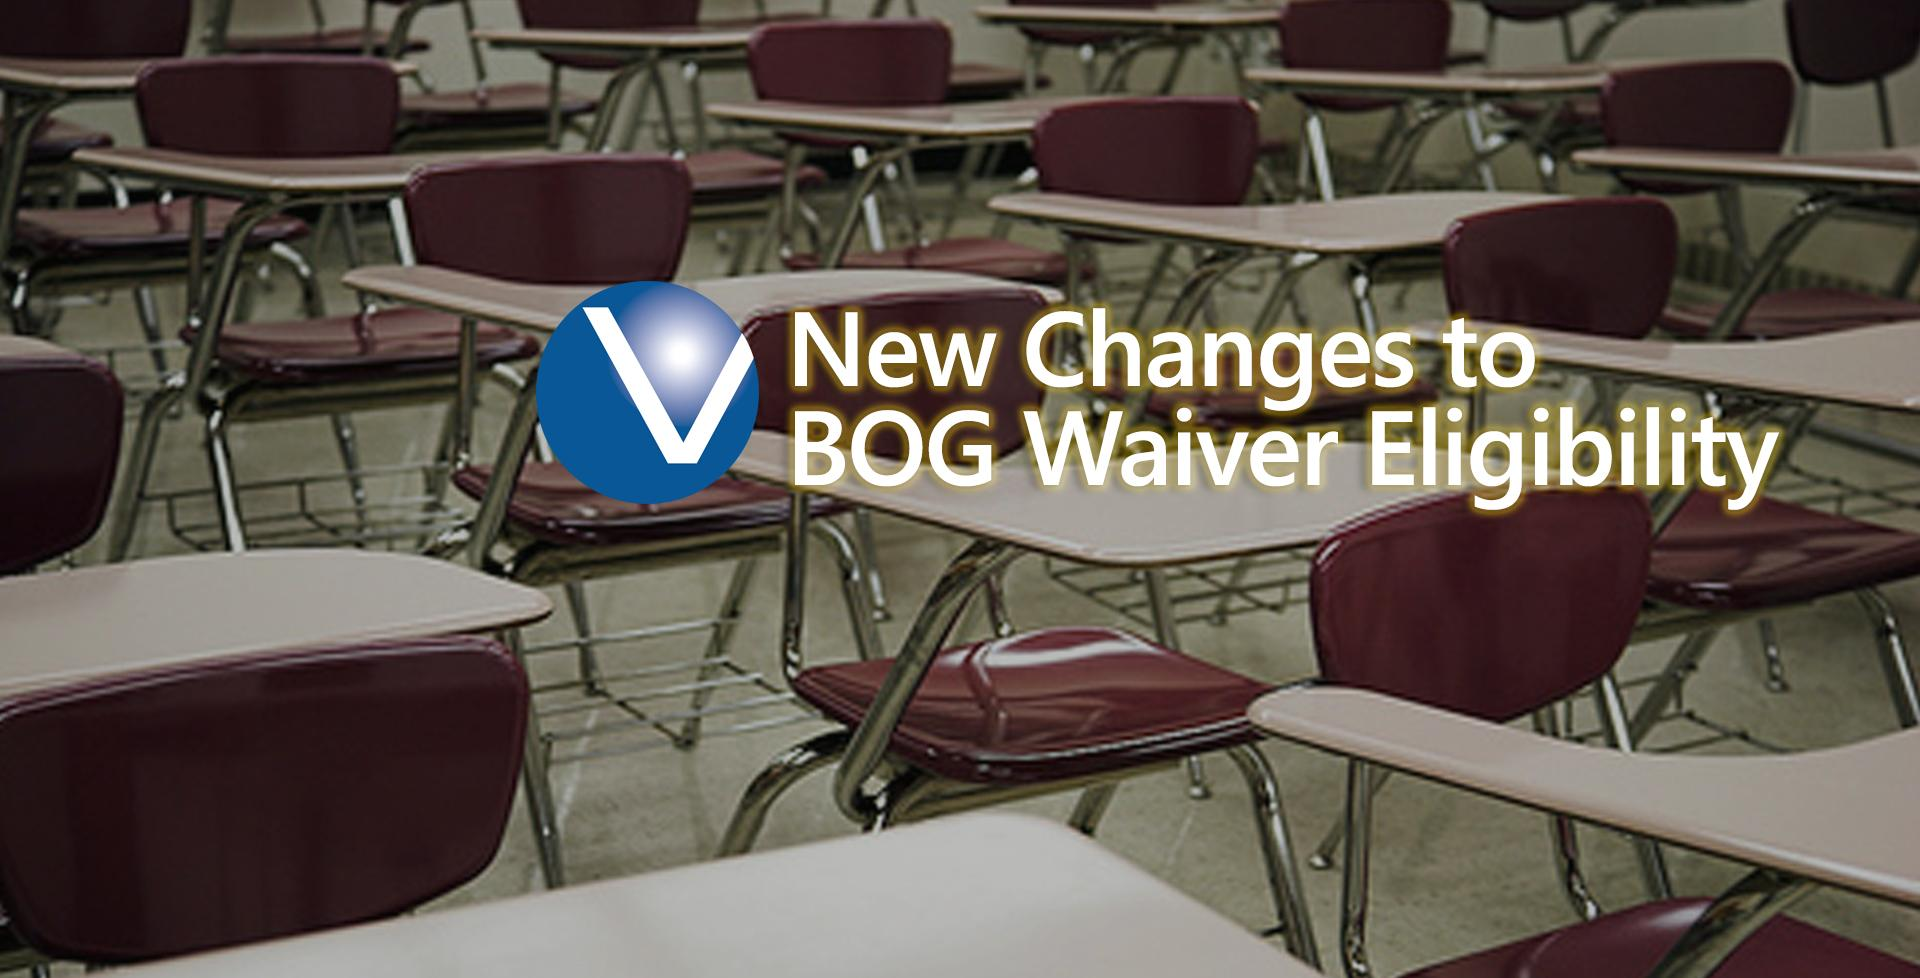 New Changes to BOG Waiver Eligibility